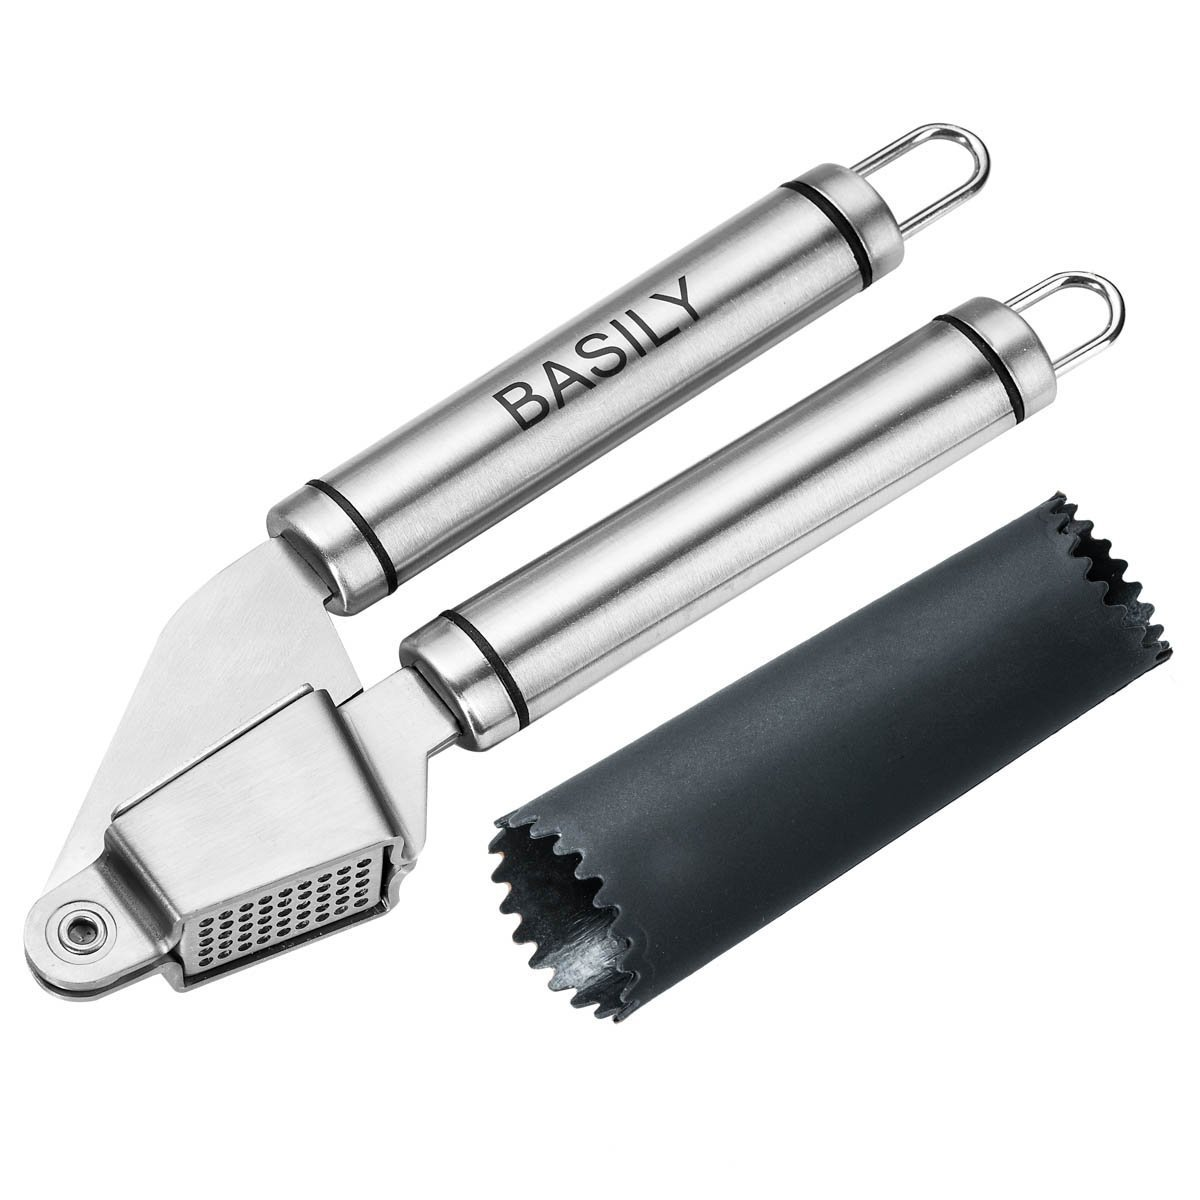 Garlic Press - Garlic Peeler Premium High Quality Stainless Steel Grade - Silicon Rolling Tube Peeler Included